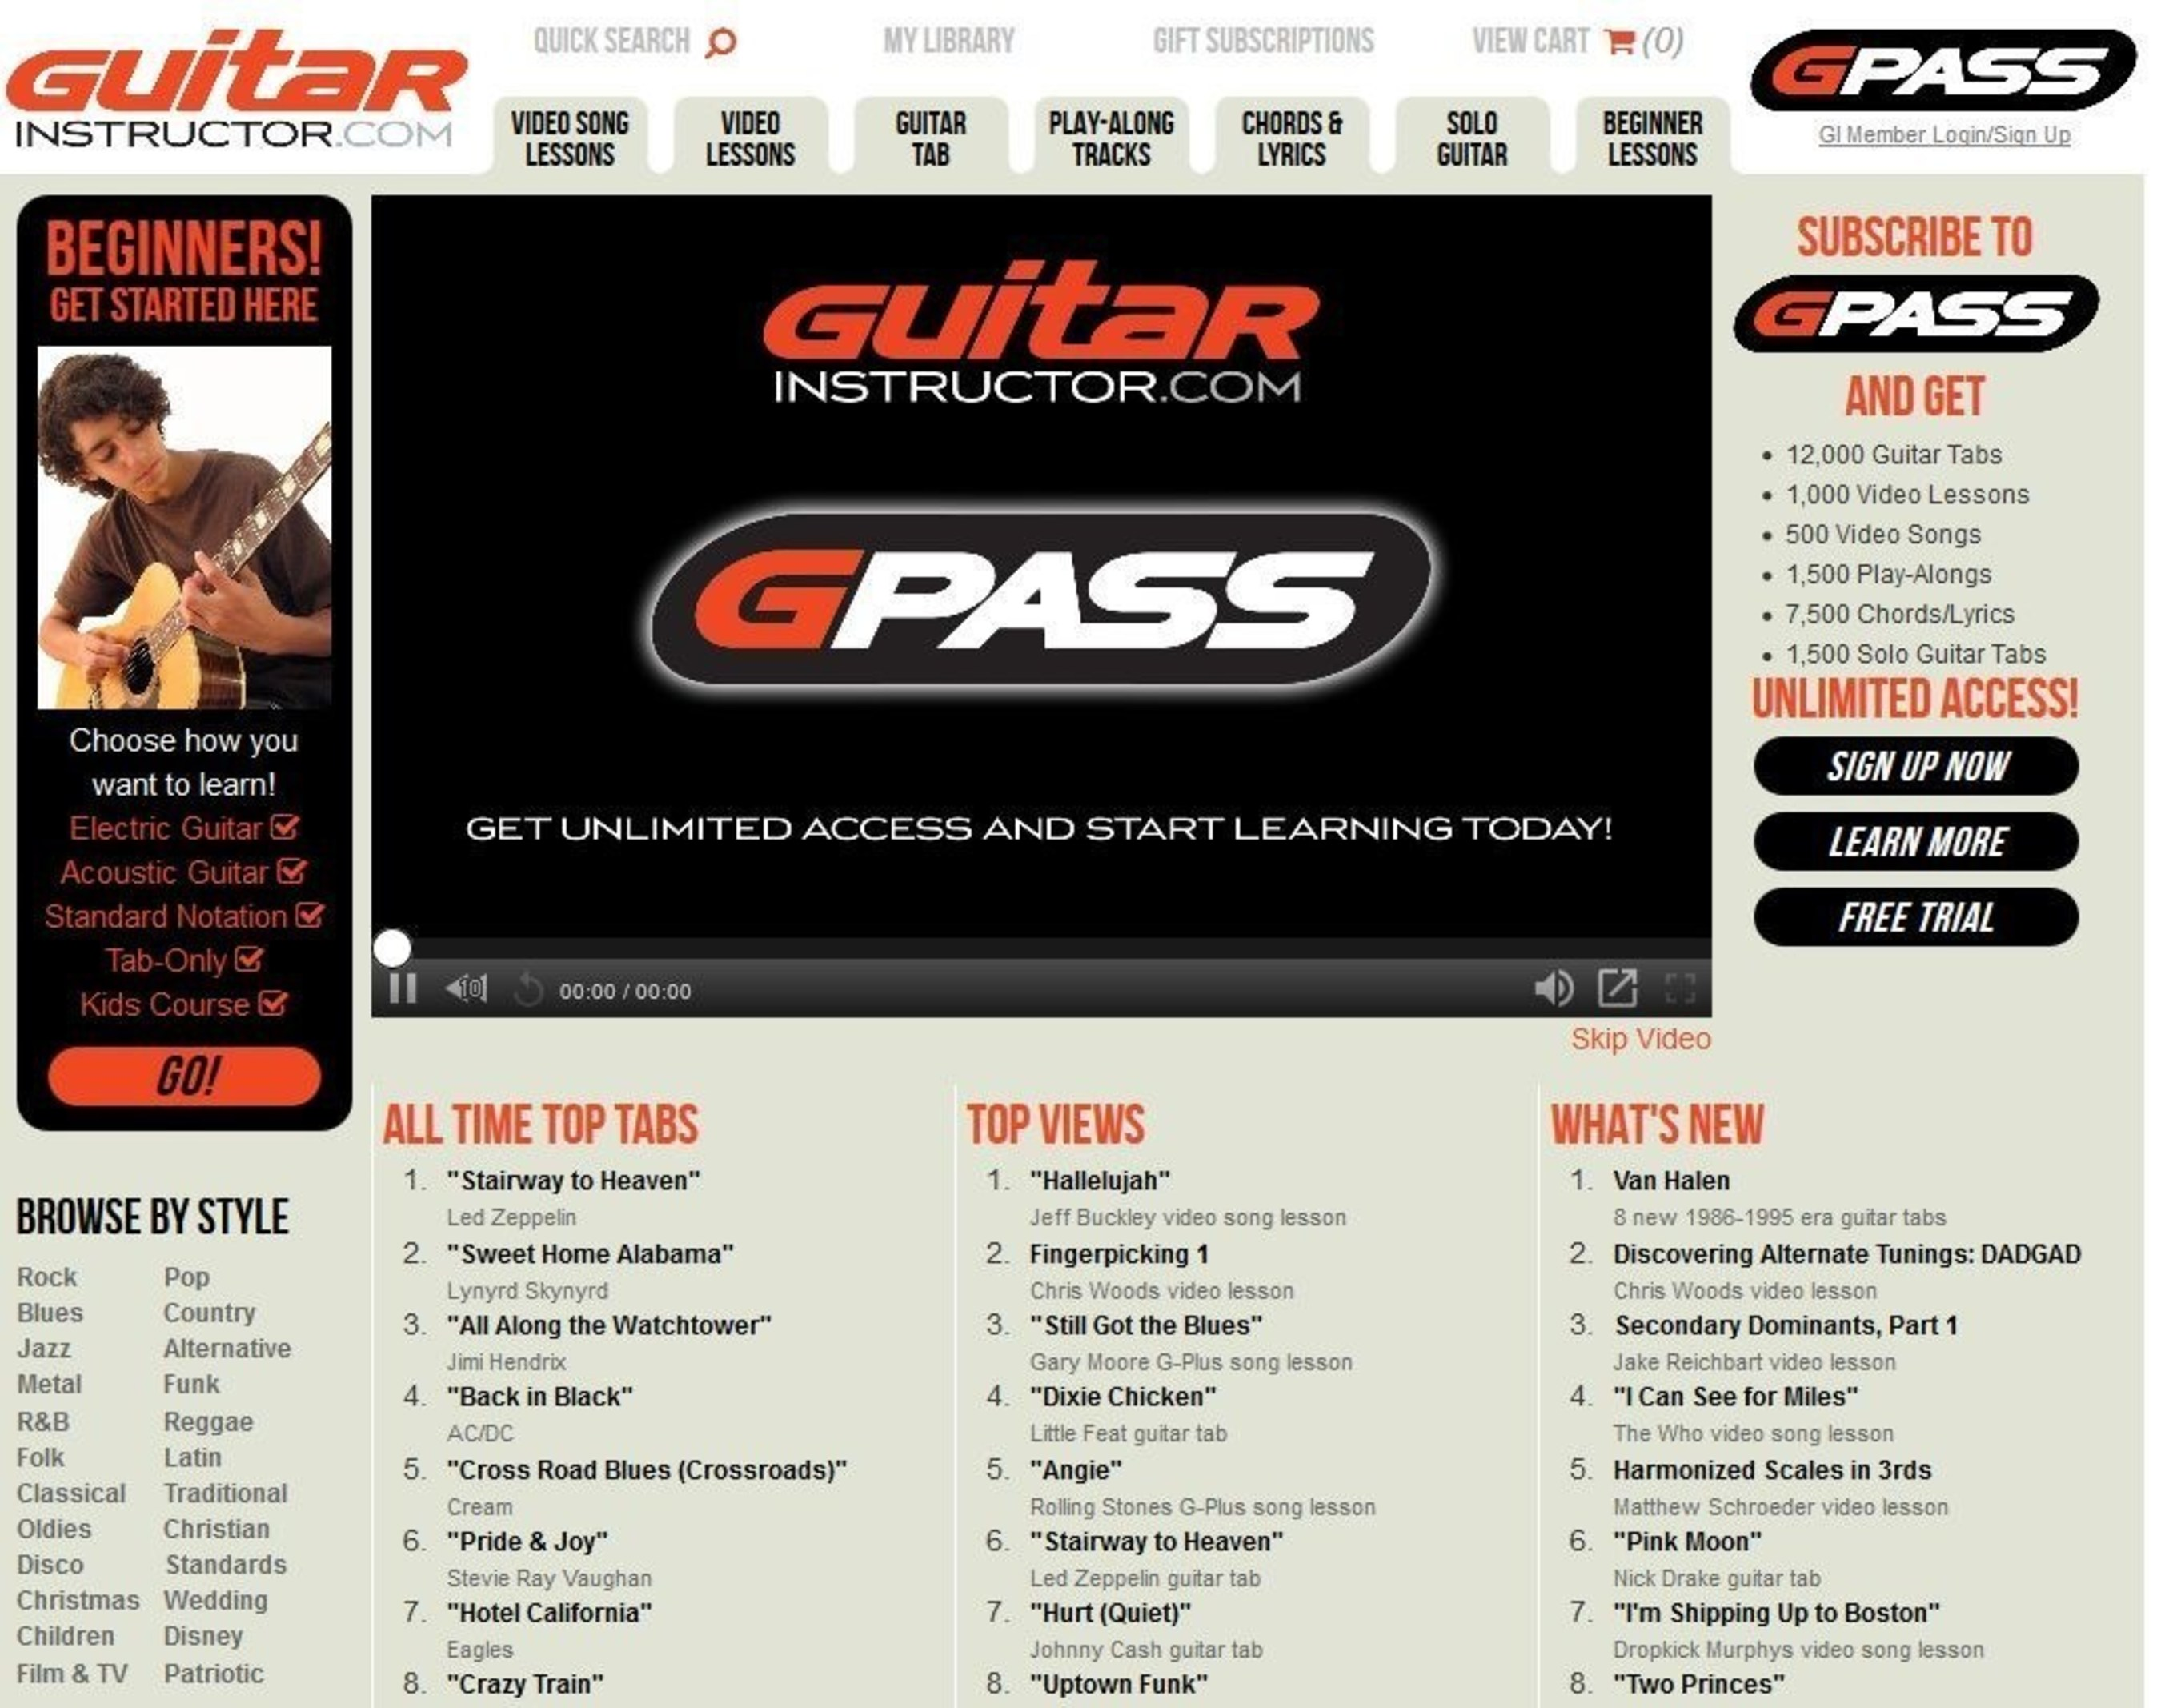 Hal Leonard Launches All New Guitarinstructor With All Access G